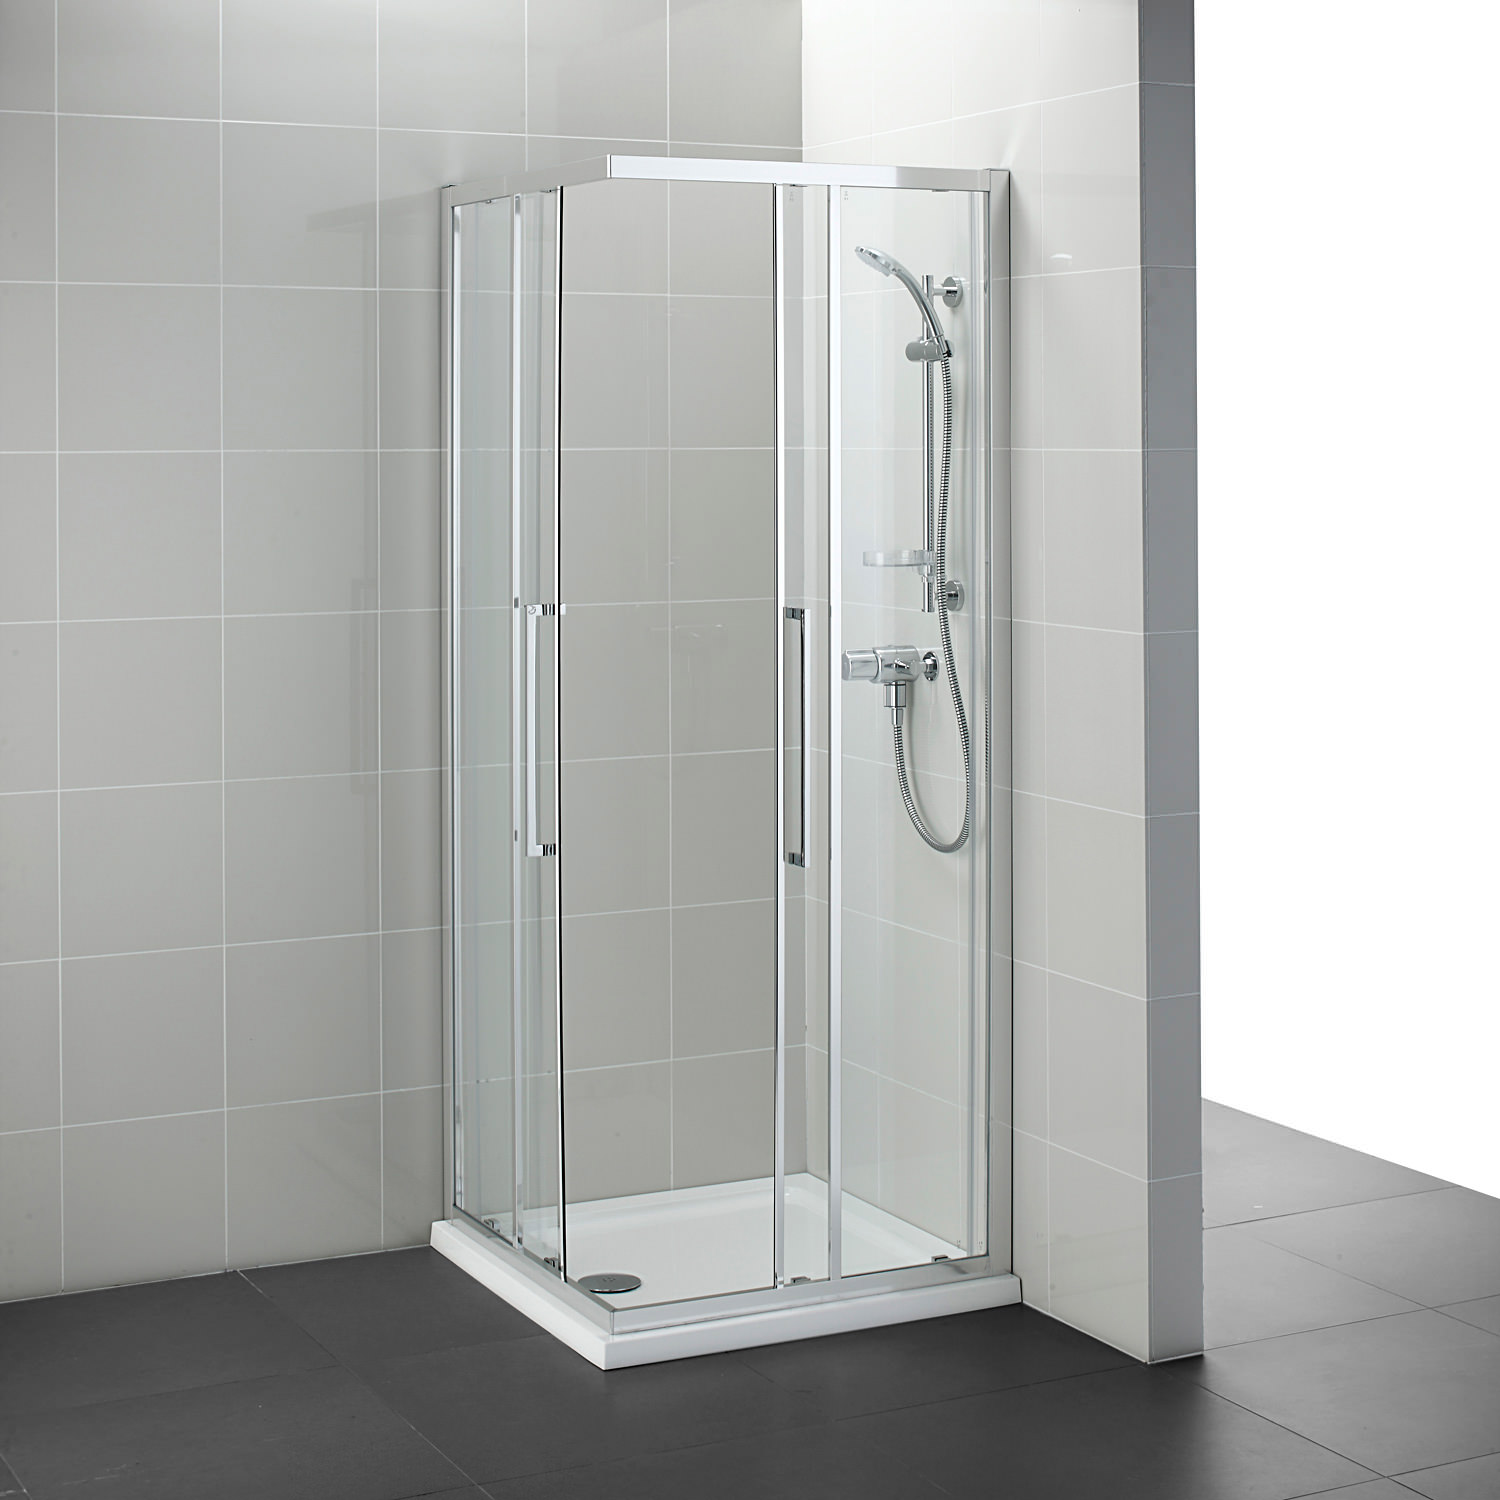 Ideal Standard Kubo 760mm Corner Entry Shower Enclosure